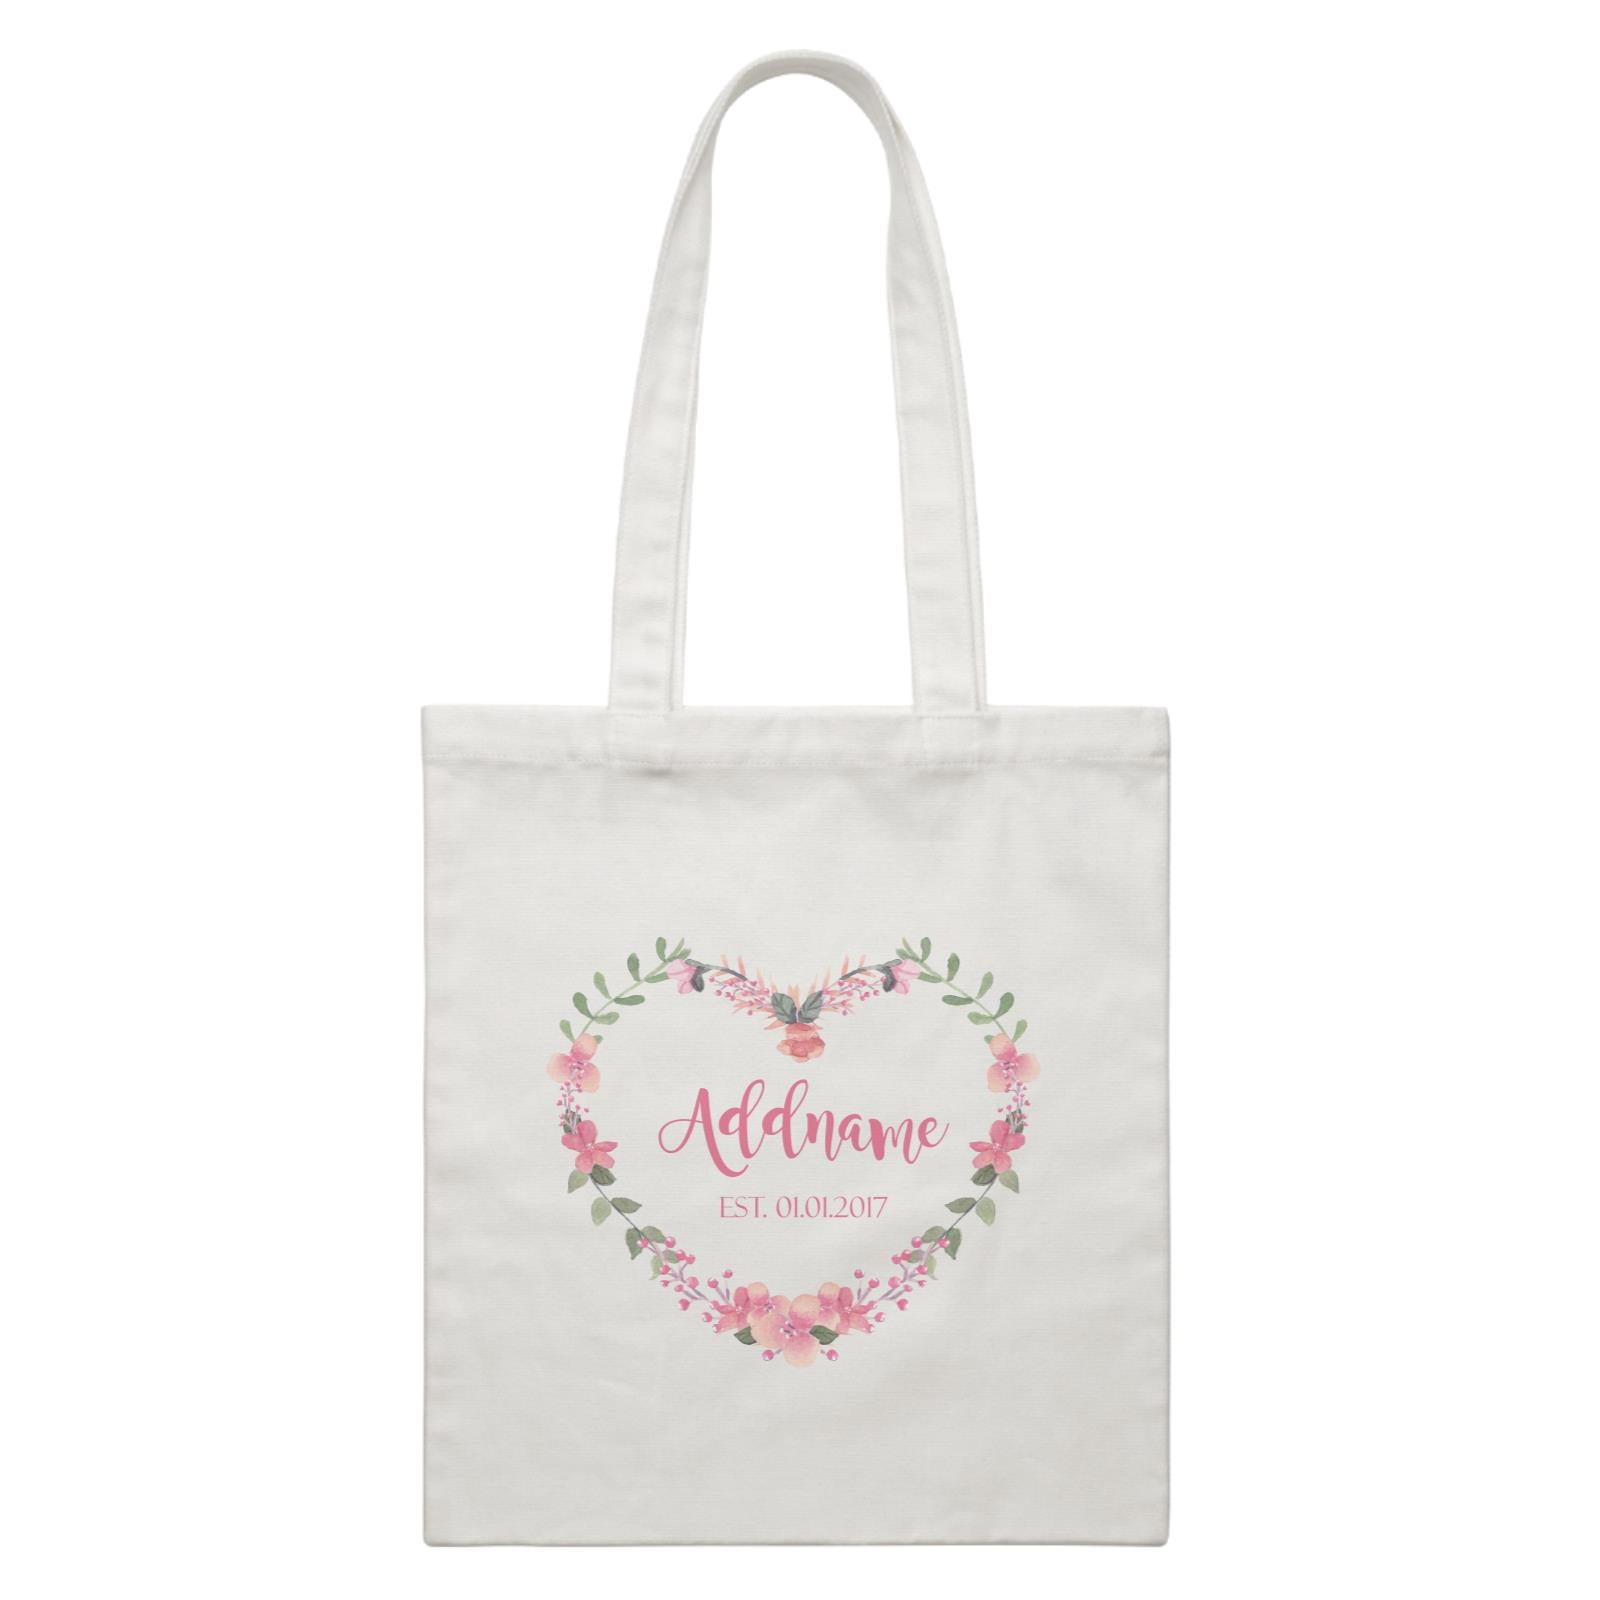 Add Name and Add Date in Pink Heart Shaped Flower Wreath White Canvas Bag